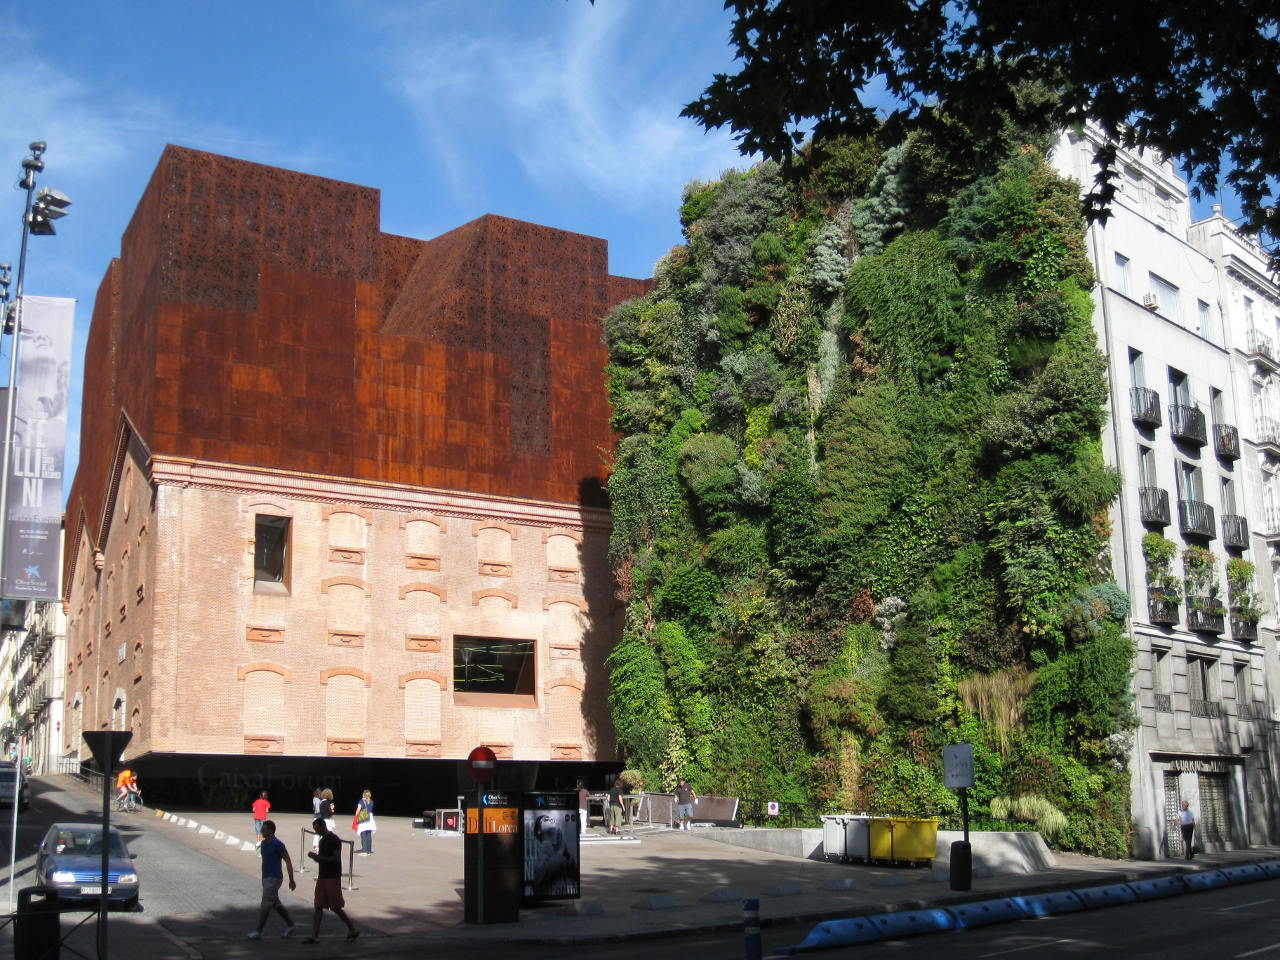 Vertical_Garden_and_Caixa_Forum_02.jpg